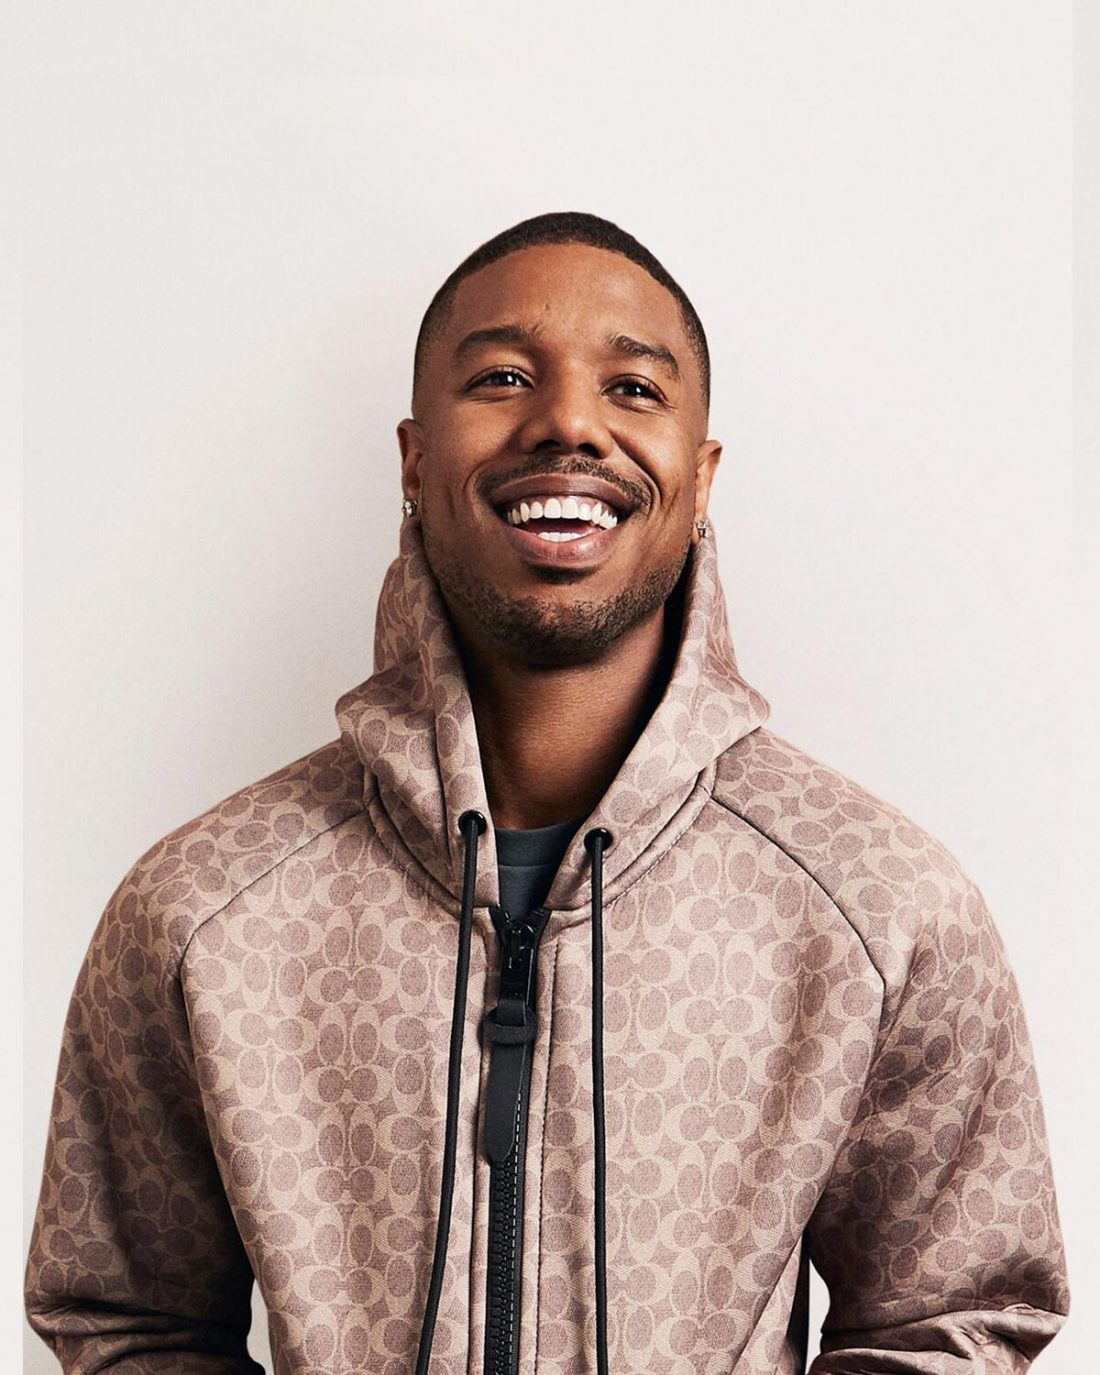 Michael B Jordan joins Selena Gomez as the global face of Coach